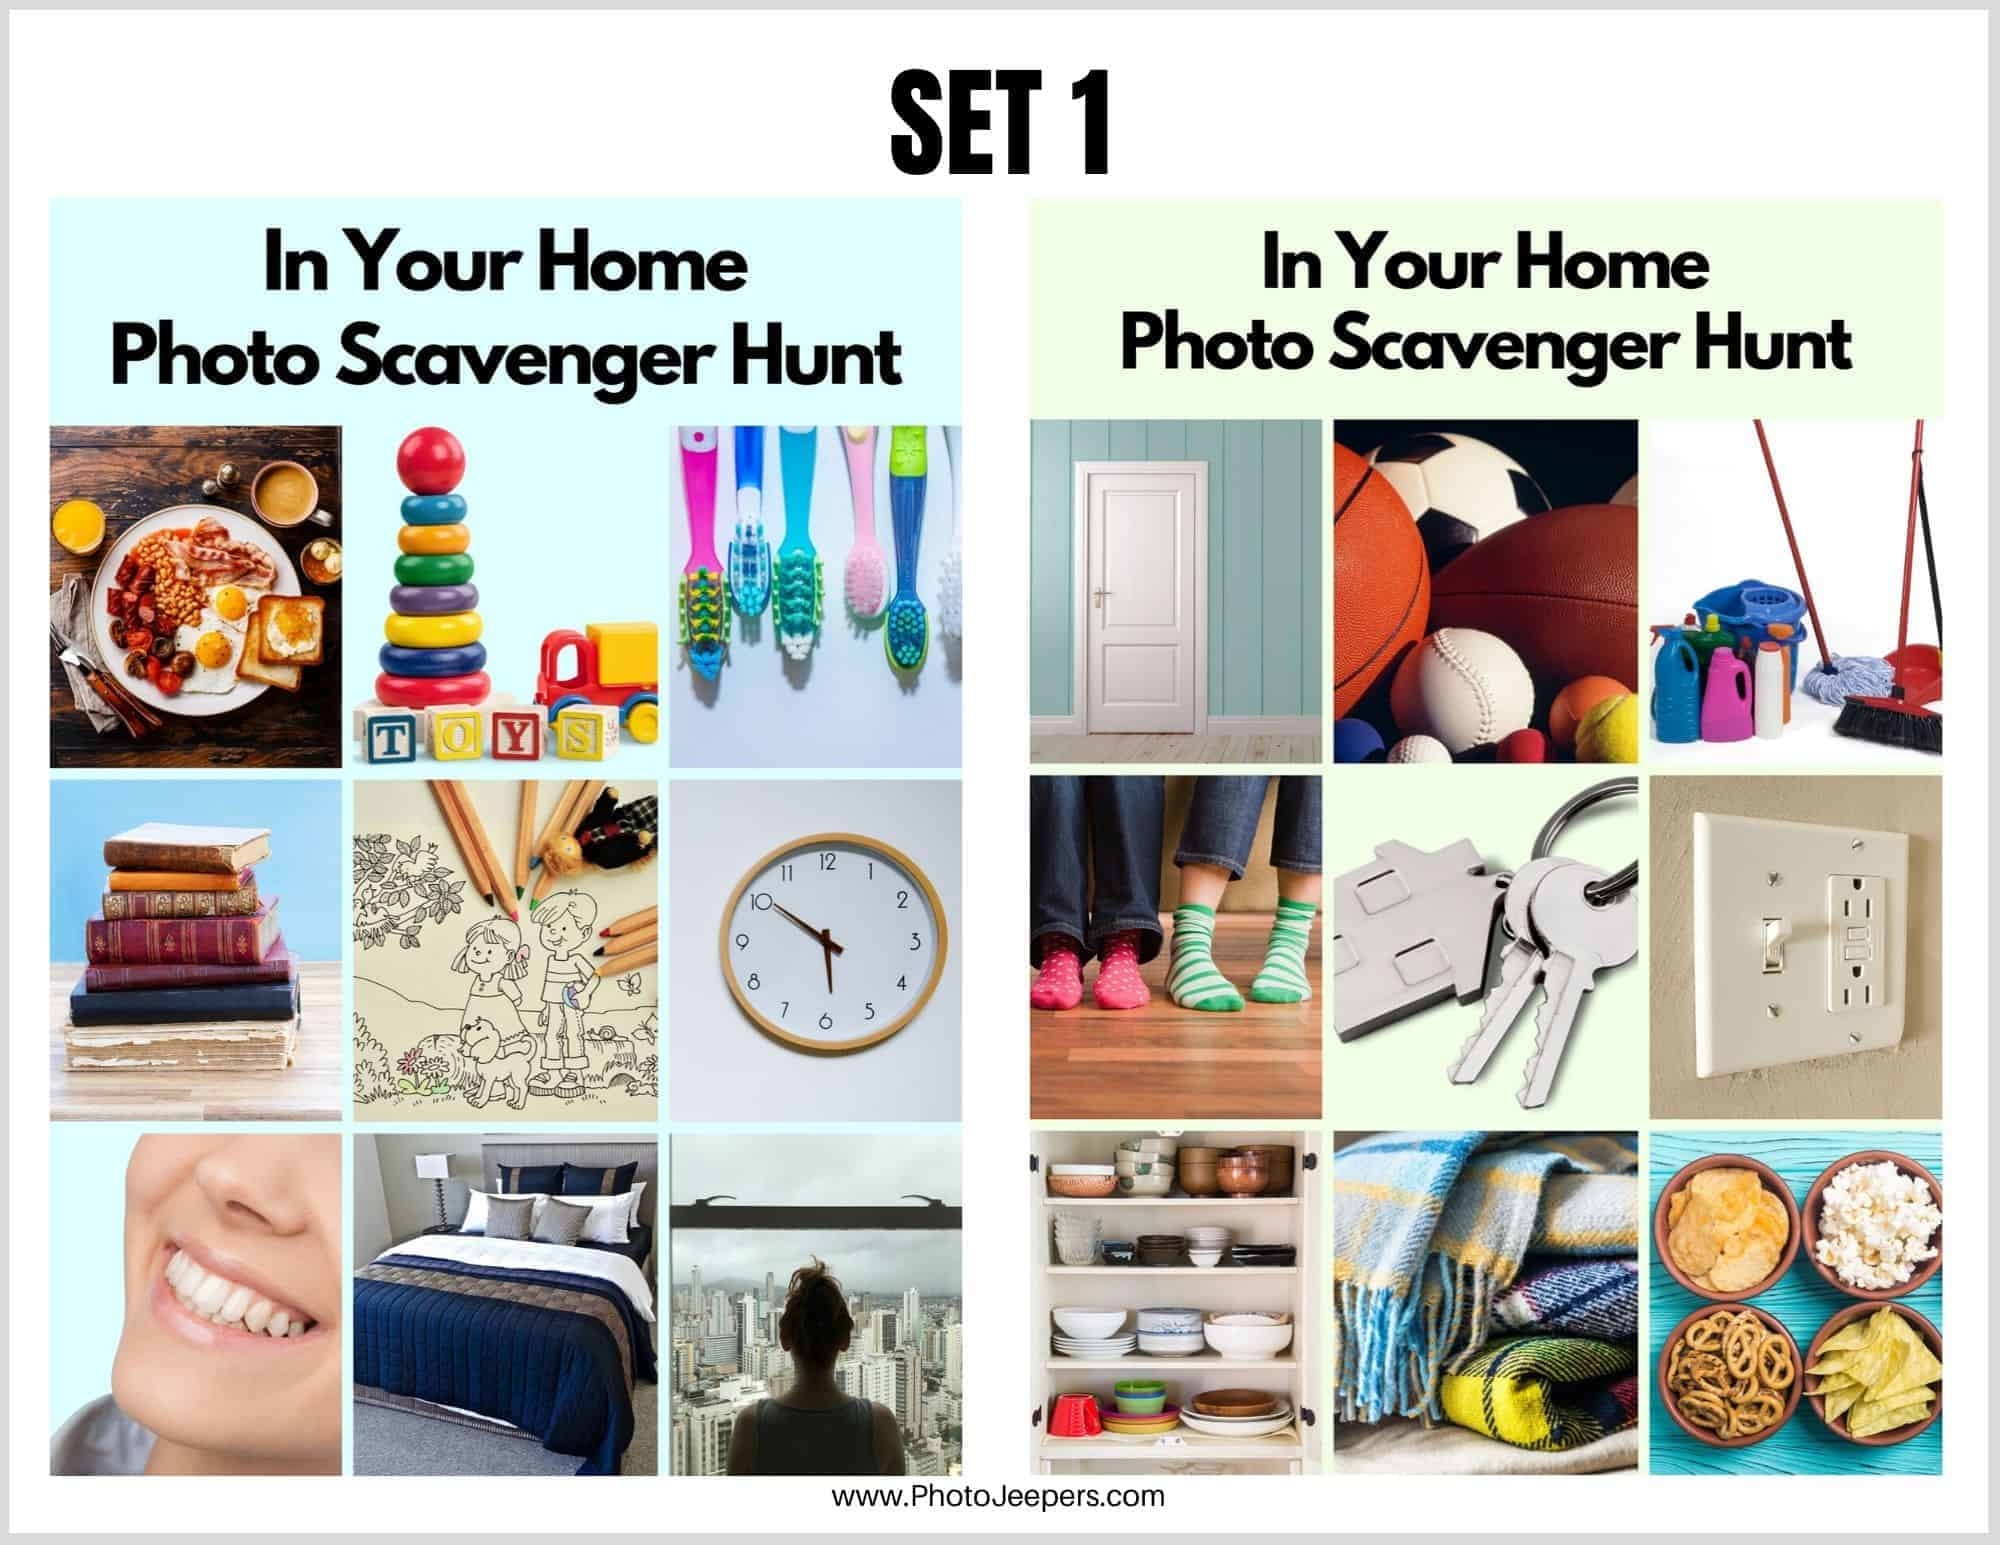 In Your Home Photo Scavenger Hunt Cards for Young Kids